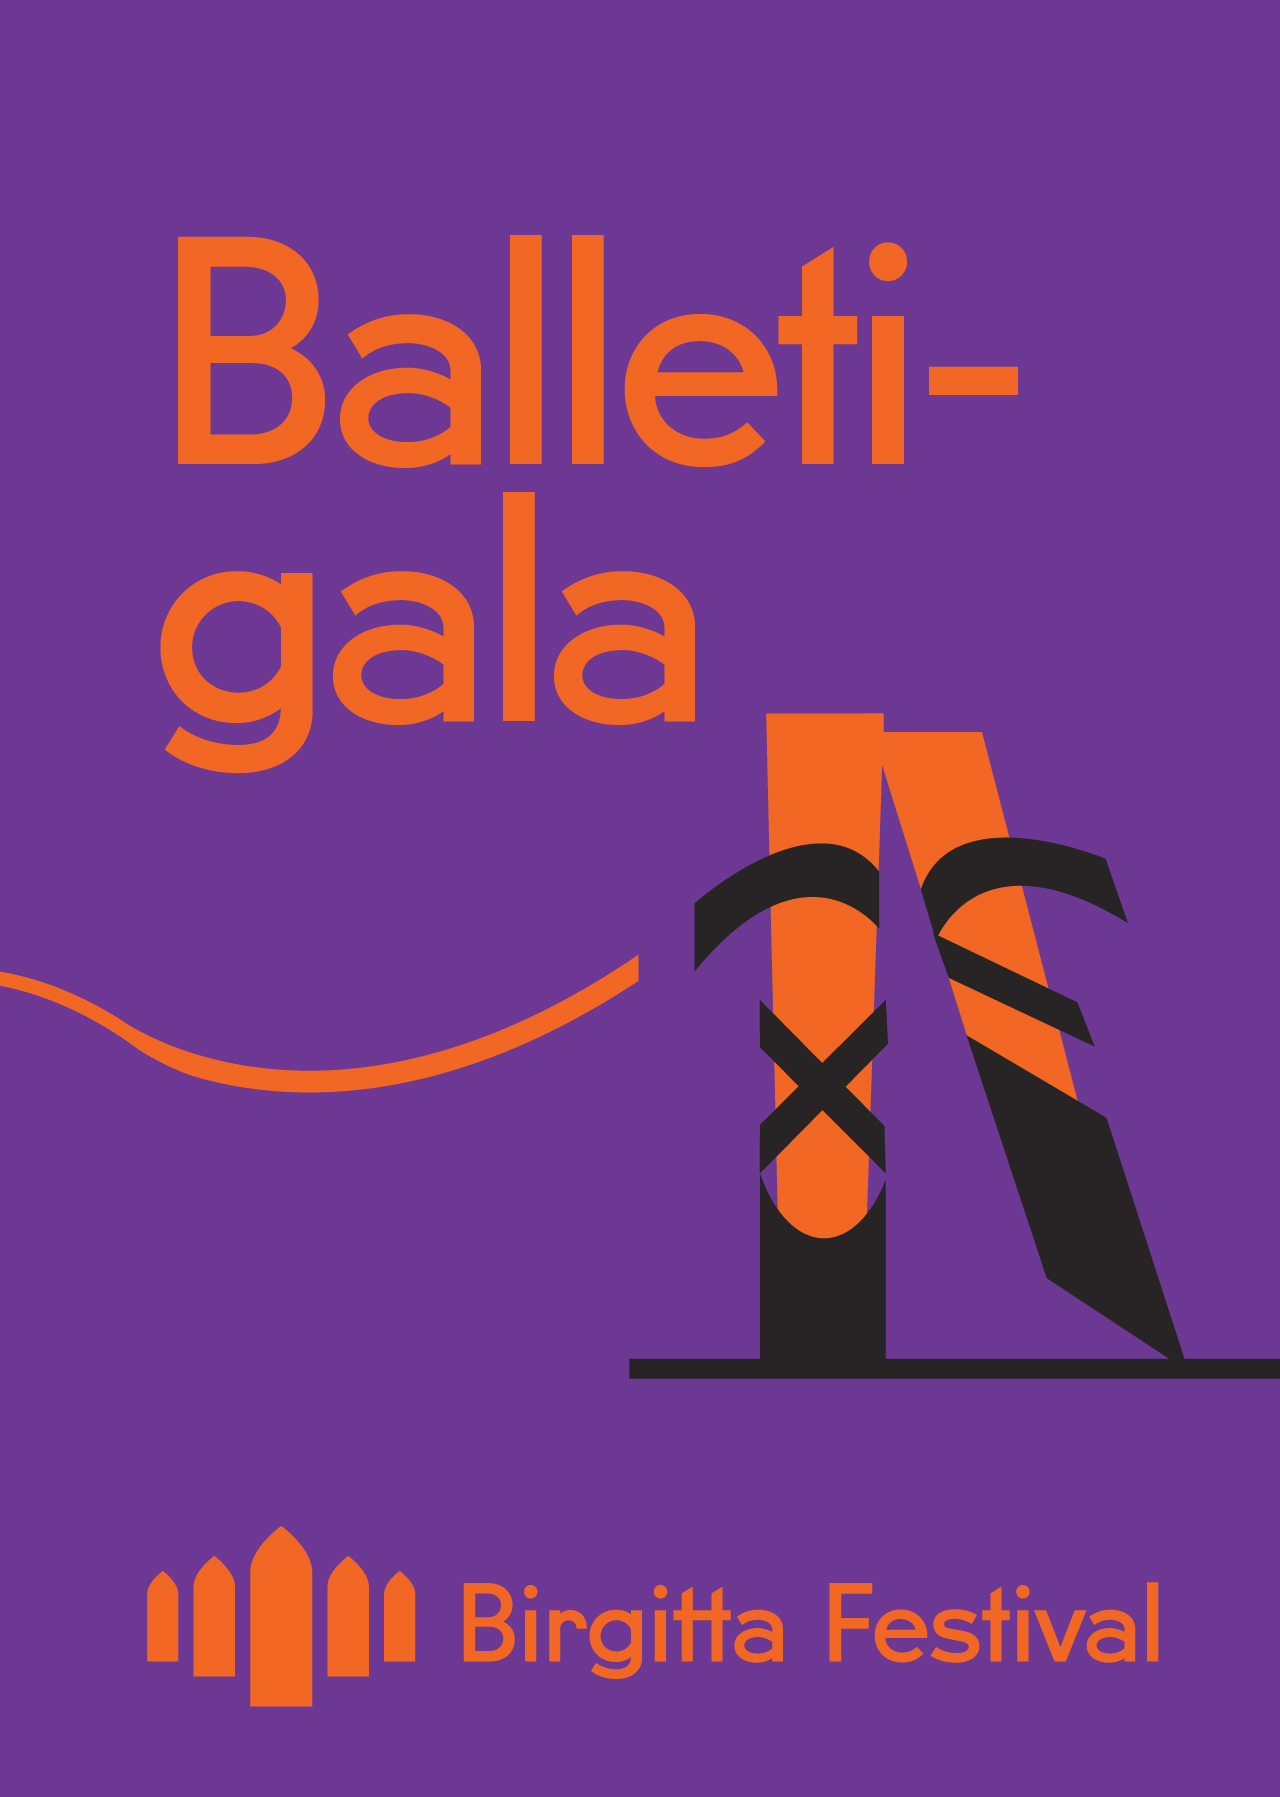 BALLETIGALA